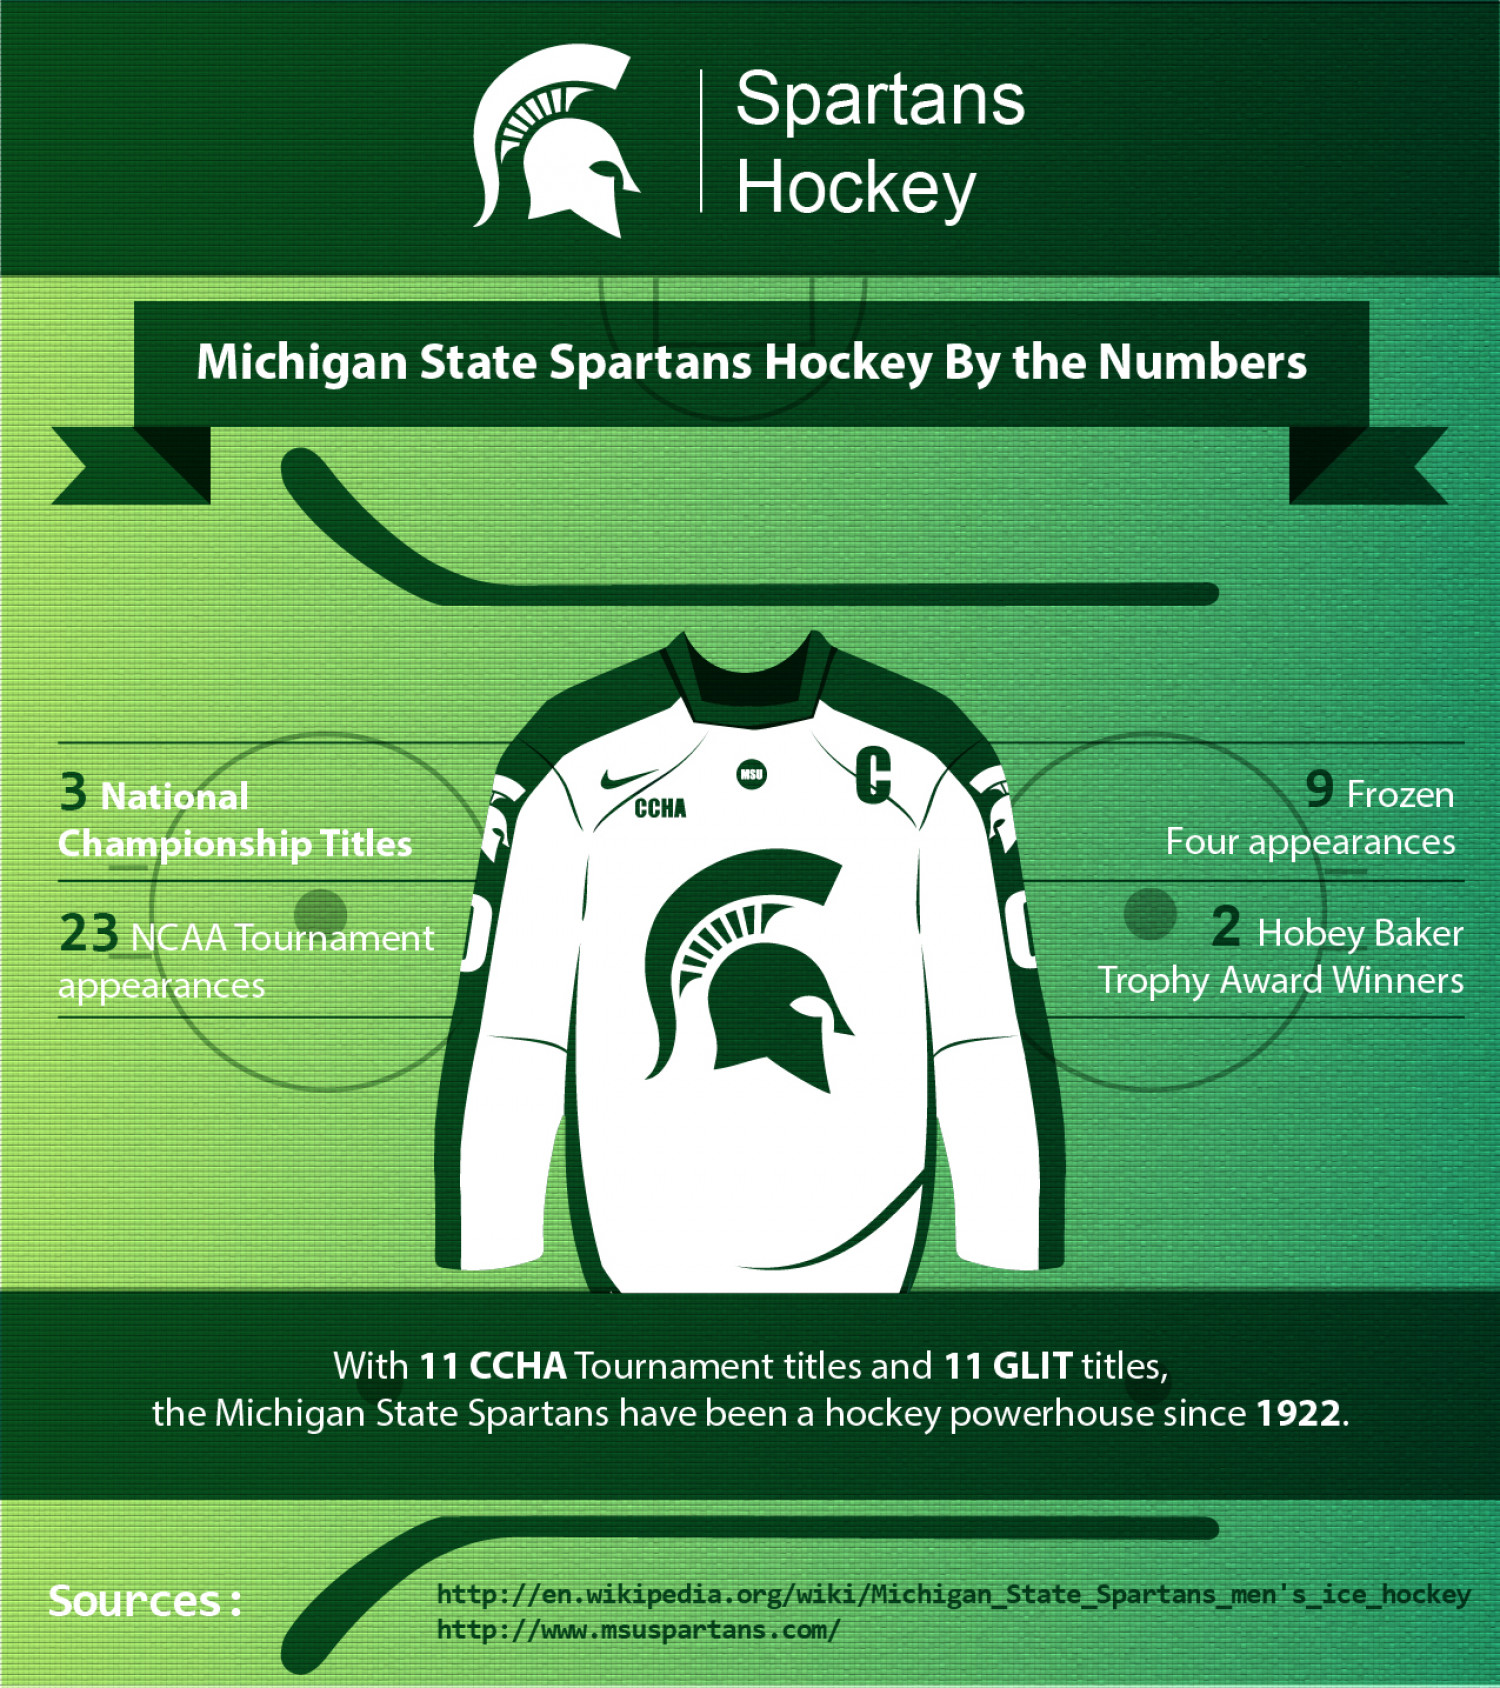 Michigan State Spartans Hockey By the Numbers Infographic